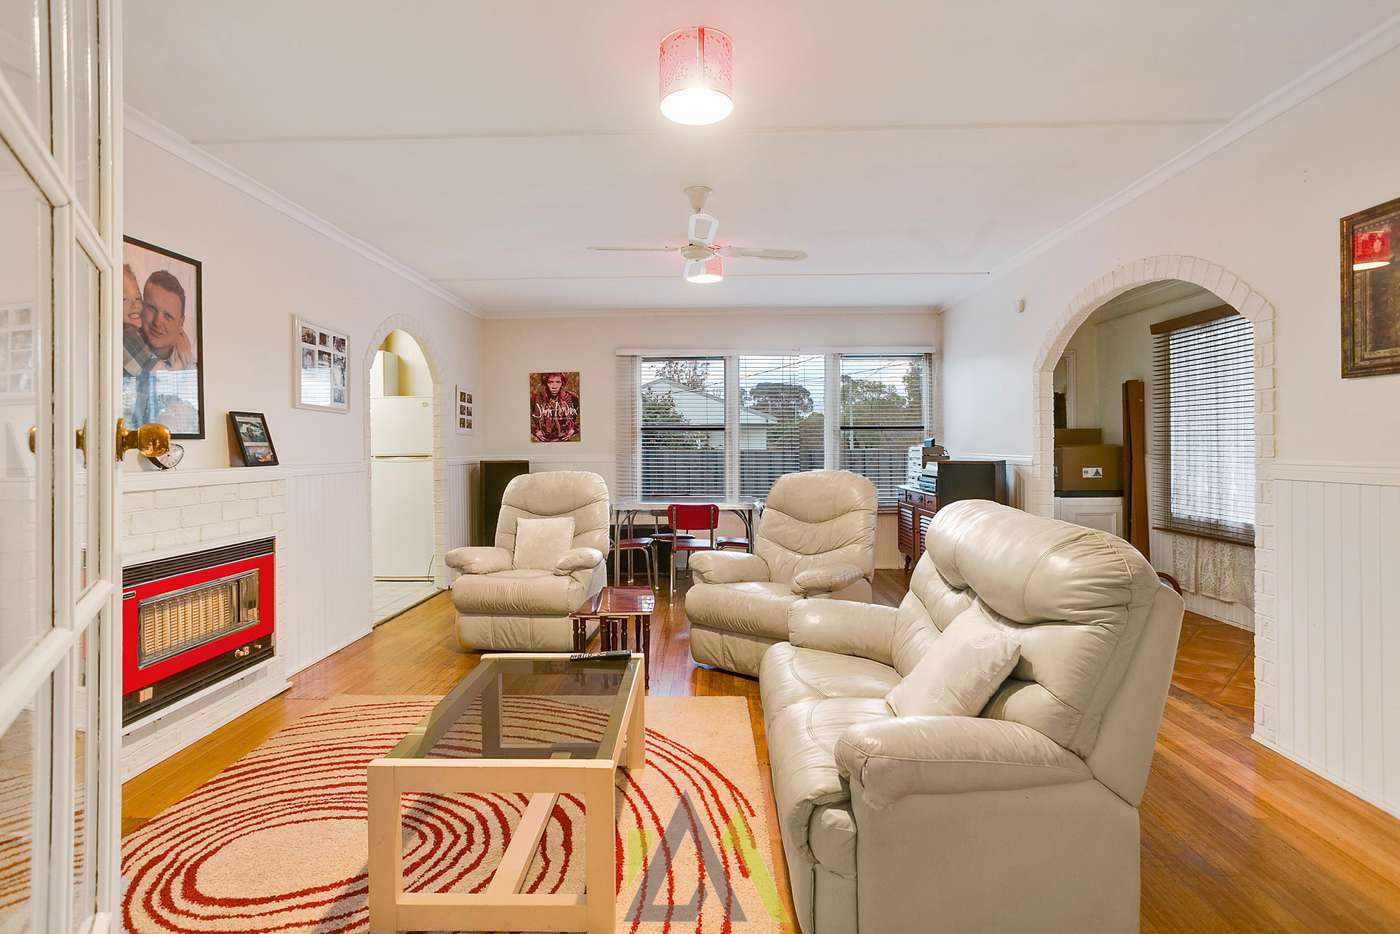 Sixth view of Homely house listing, 3 Burdett Street, Frankston North VIC 3200